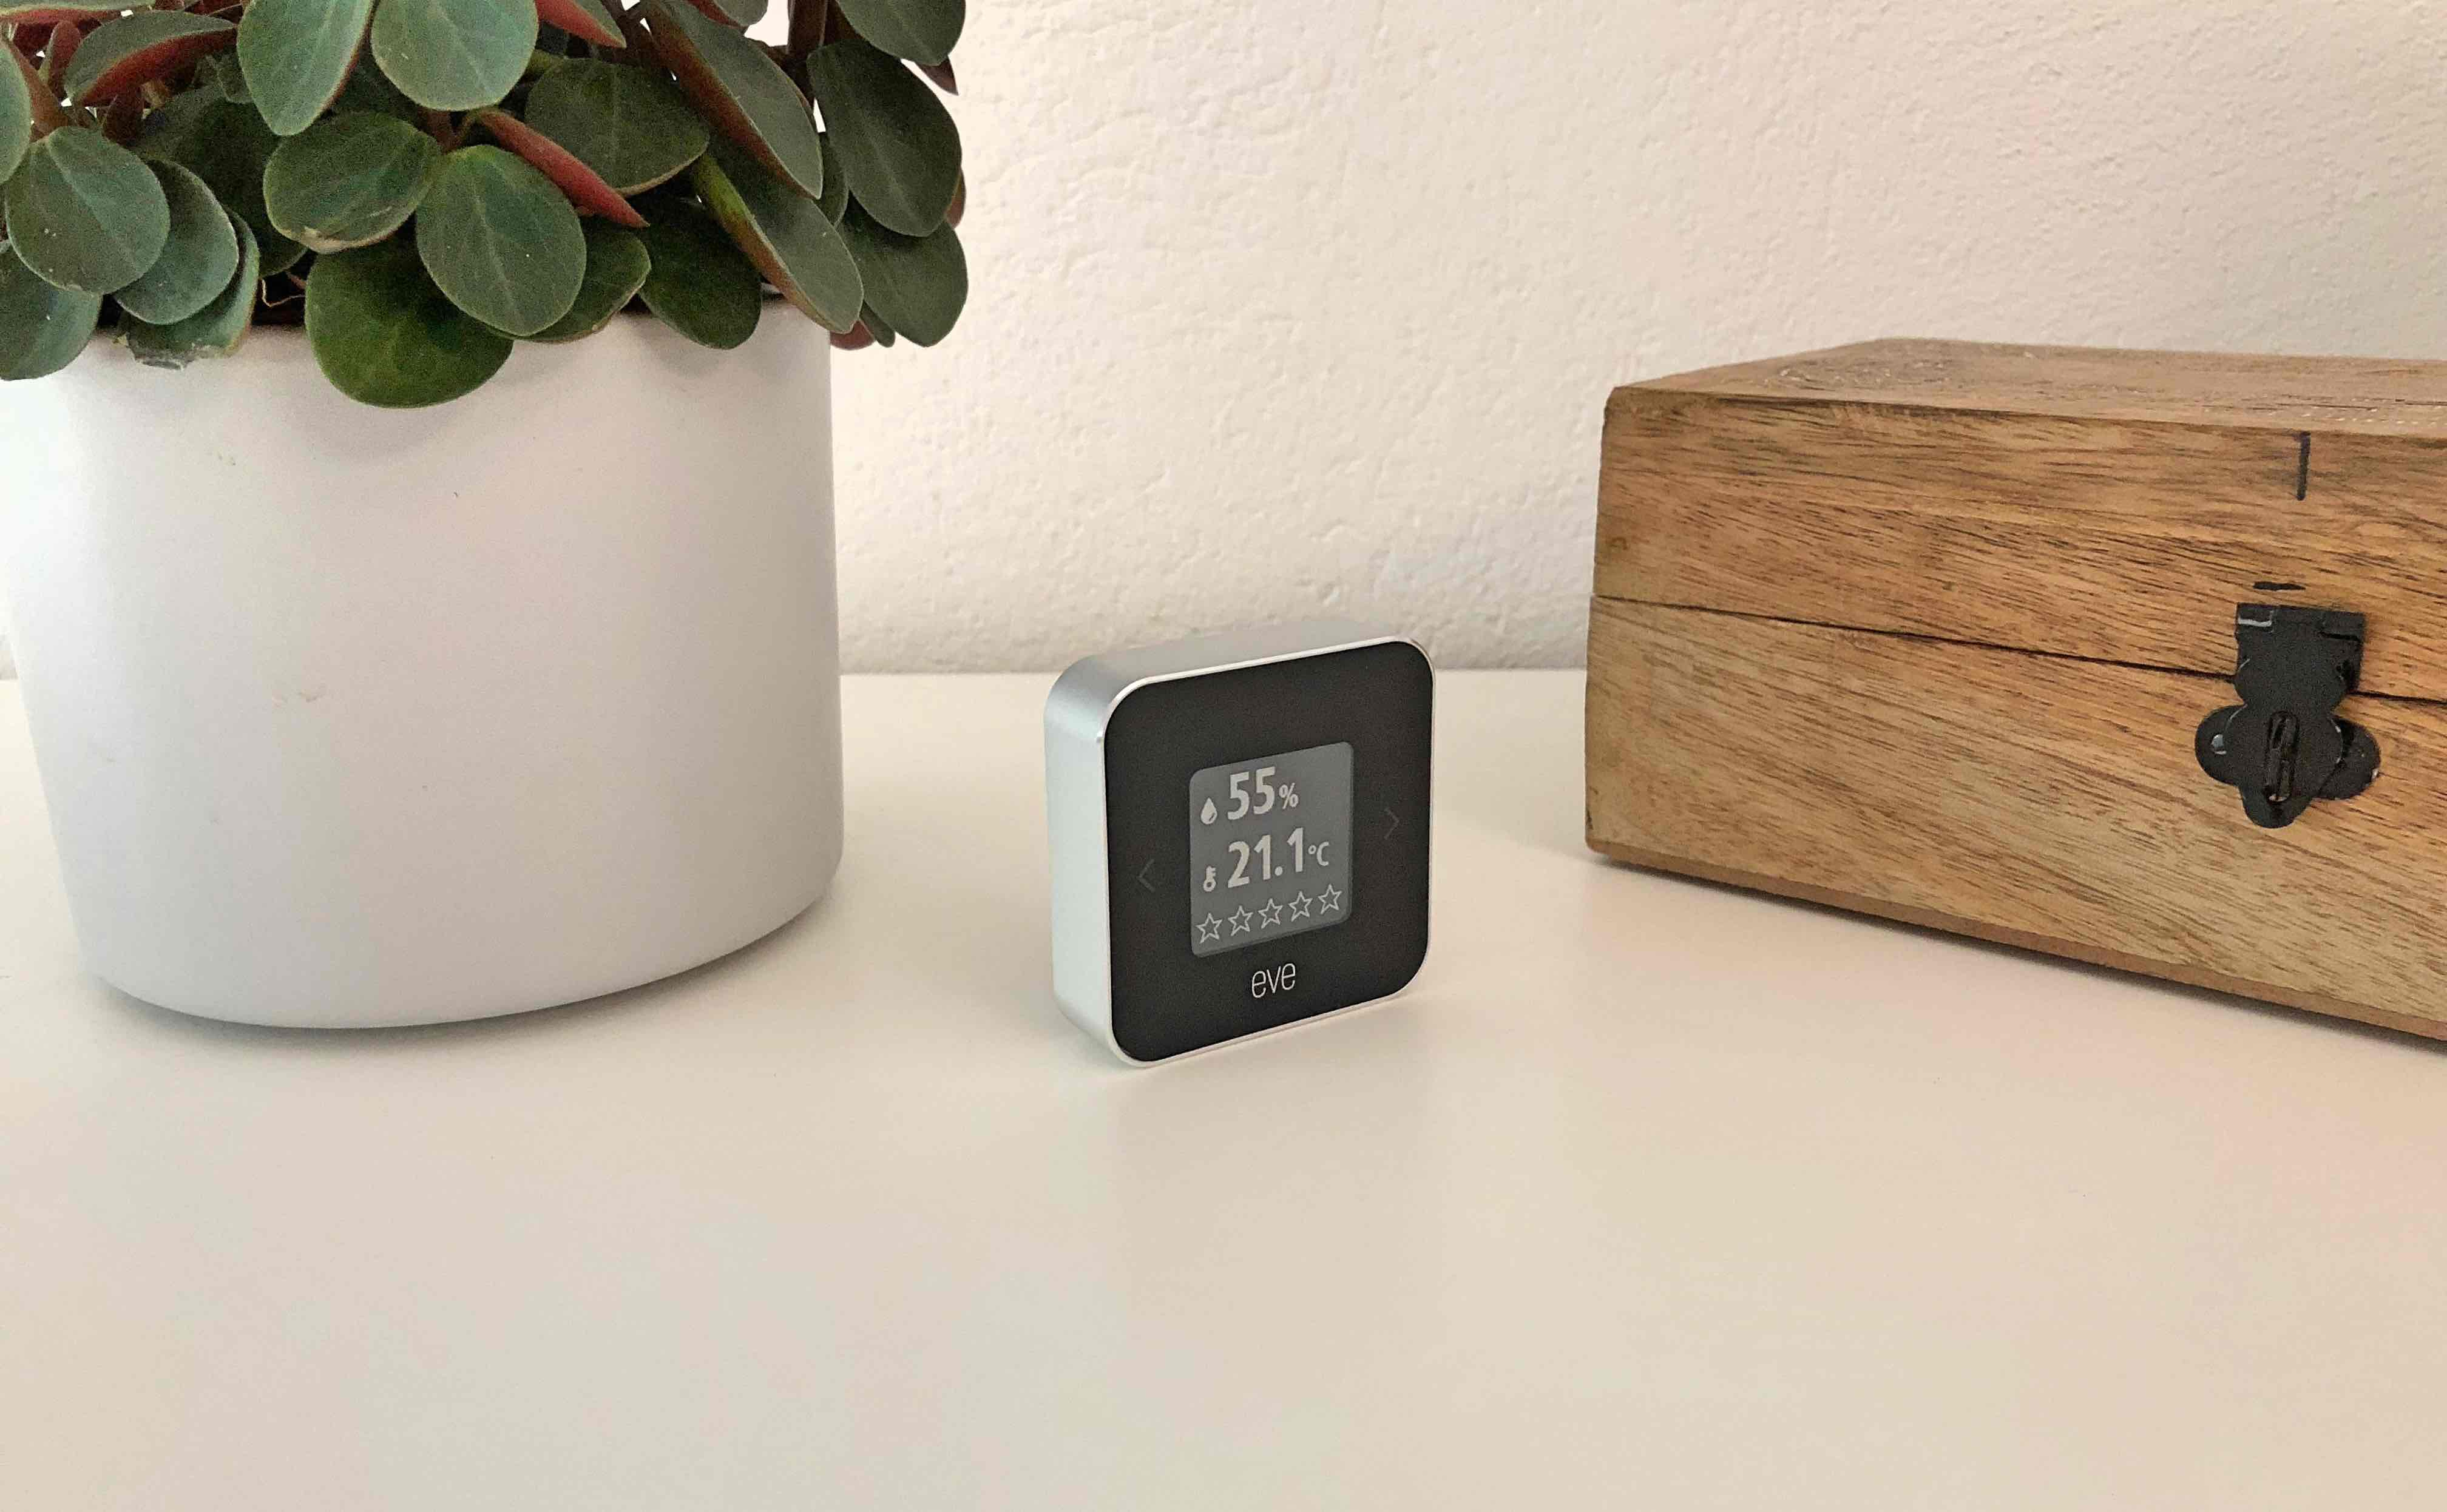 Eve_Room_2_HomeKit_Artikel_Review1 Im Test: Der Eve Room 2 - Temperatur, Luftfeuchtigkeit und Luftqualität in einem HomeKit-Gerät